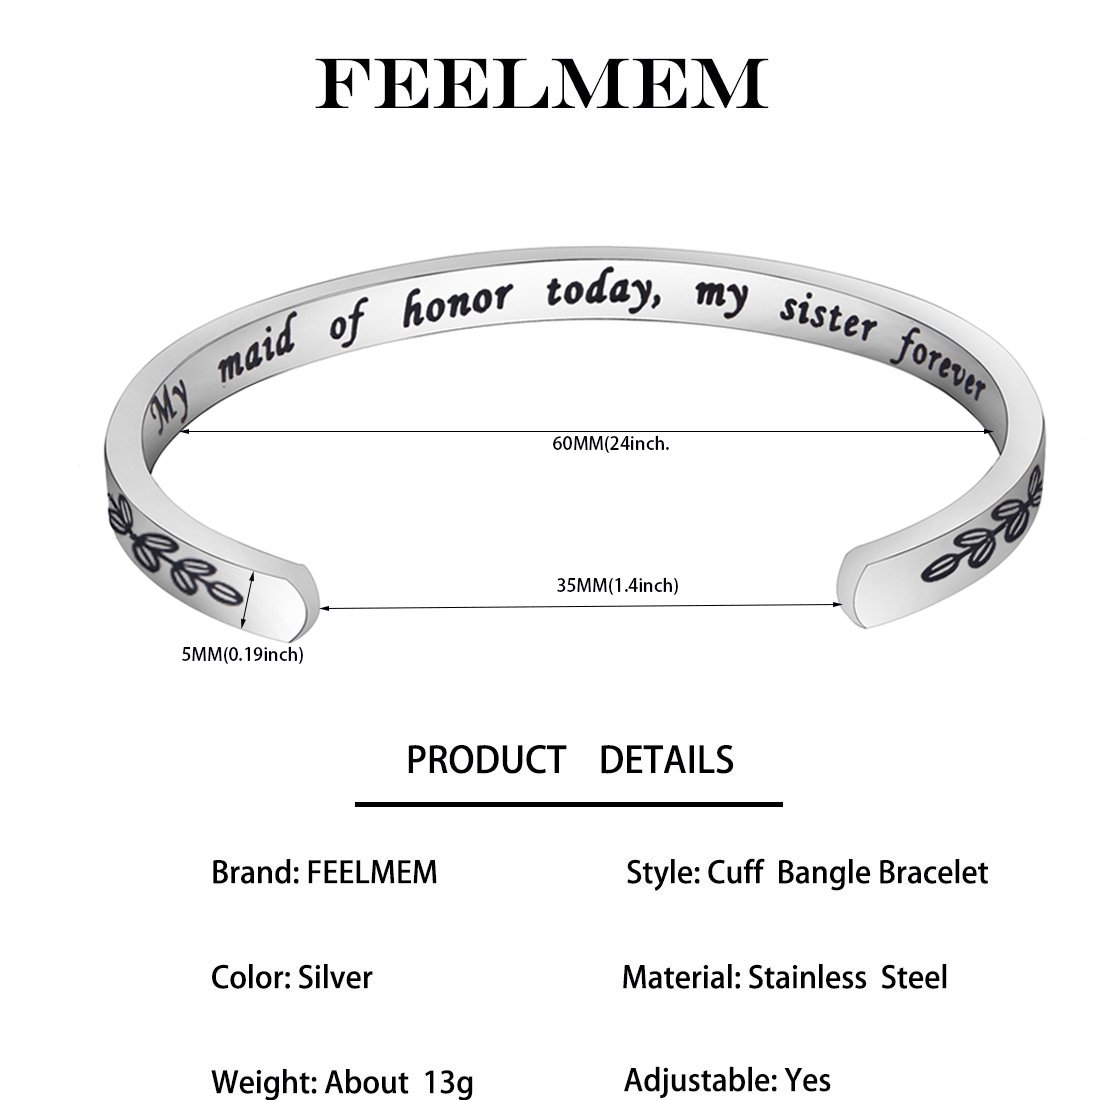 FEELMEM Bridesmaid Gift Maid of Honor Cuff Bangle Sister Wedding Bridesmaid Bracelet Jewelry Maid of Honor Proposal Gift